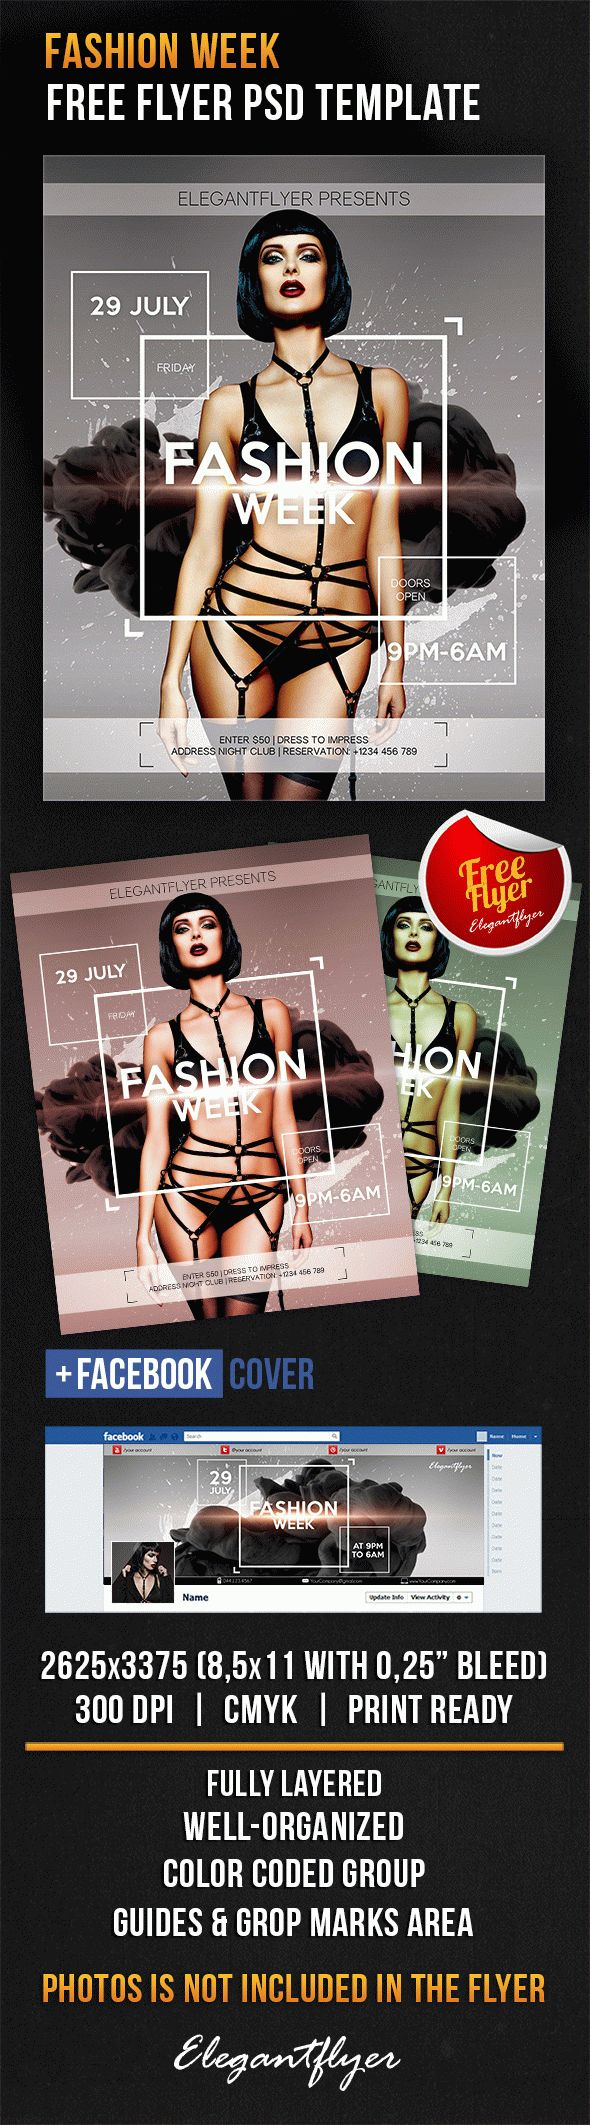 Fashion Week – Free Flyer PSD Template + Facebook Cover